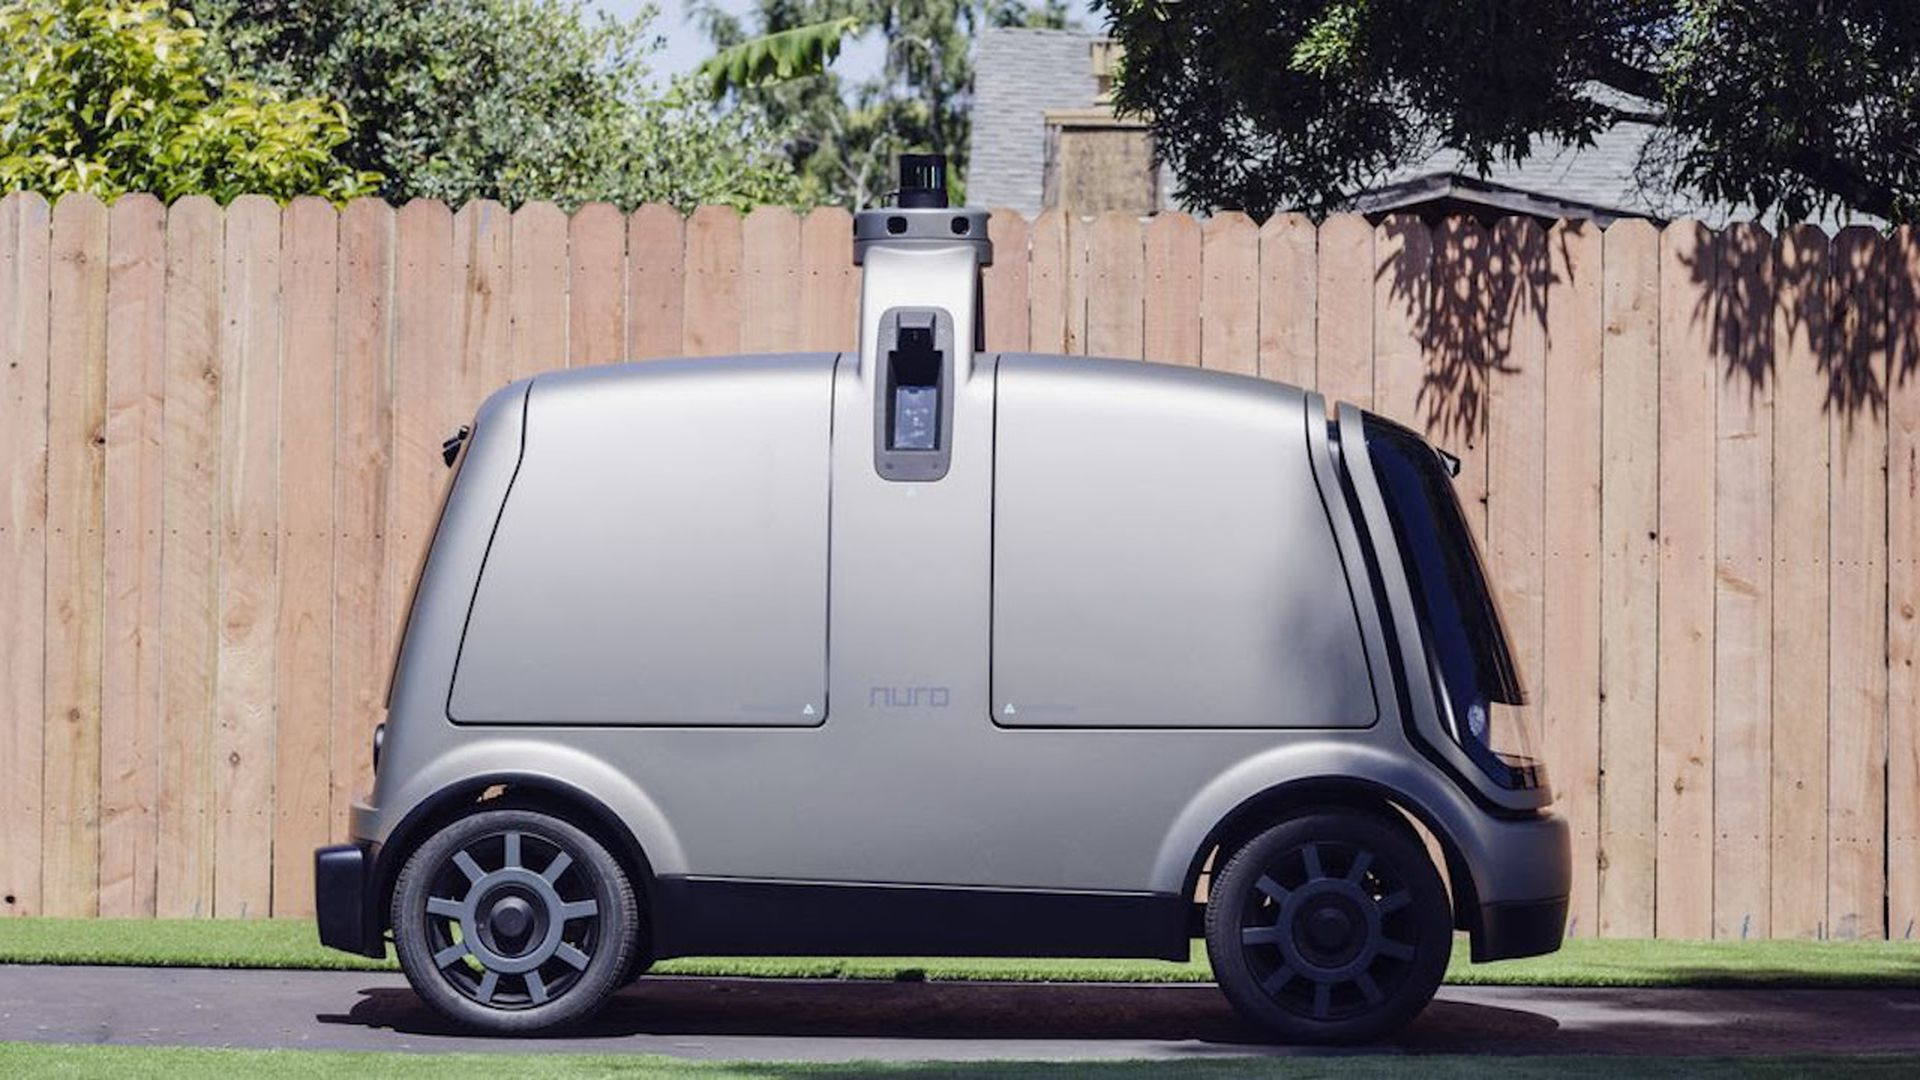 Kroger kicks off autonomous vehicle grocery delivery - Axios on golf cartoons, golf girls, golf trolley, golf players, golf card, golf hitting nets, golf words, golf buggy, golf accessories, golf tools, golf games, golf machine, golf handicap,